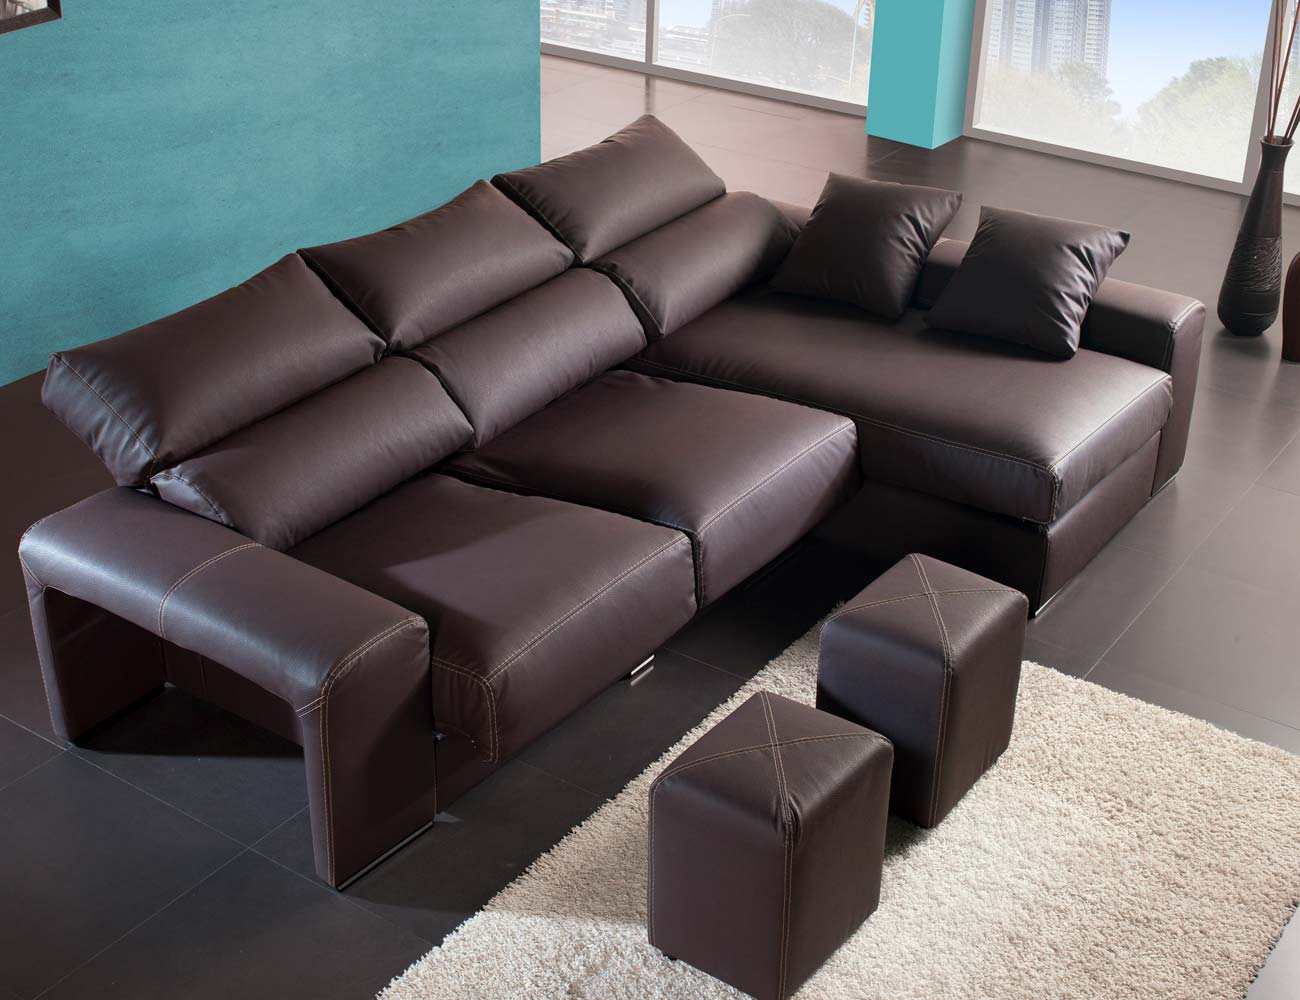 Sofa chaiselongue moderno polipiel chocolate poufs taburetes31